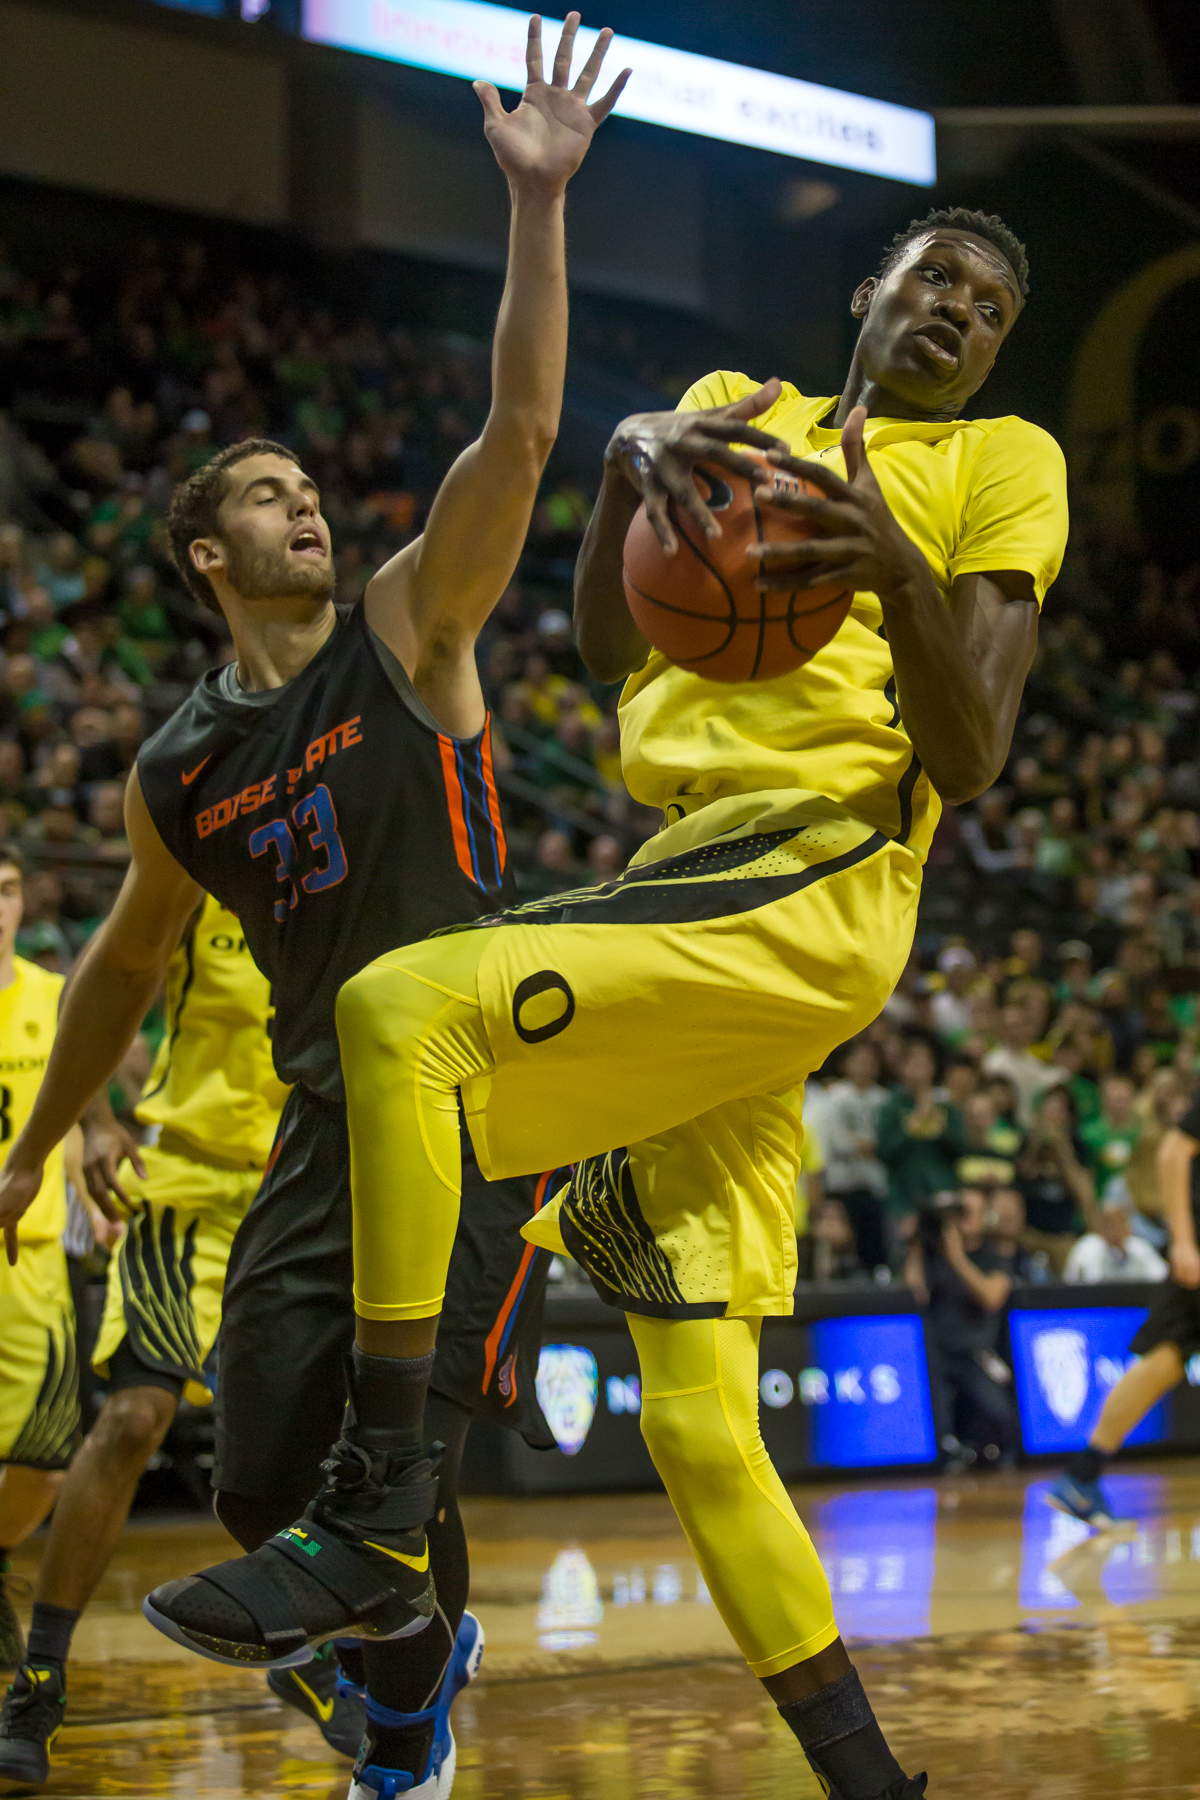 Oregon forward Chris Boucher (#25) grabs a rebound from Boise State forward David Wacker (#33). After trailing for most of the game, the Oregon Ducks defeated the Boise State Broncos 68-63. Photo by Dillon Vibes